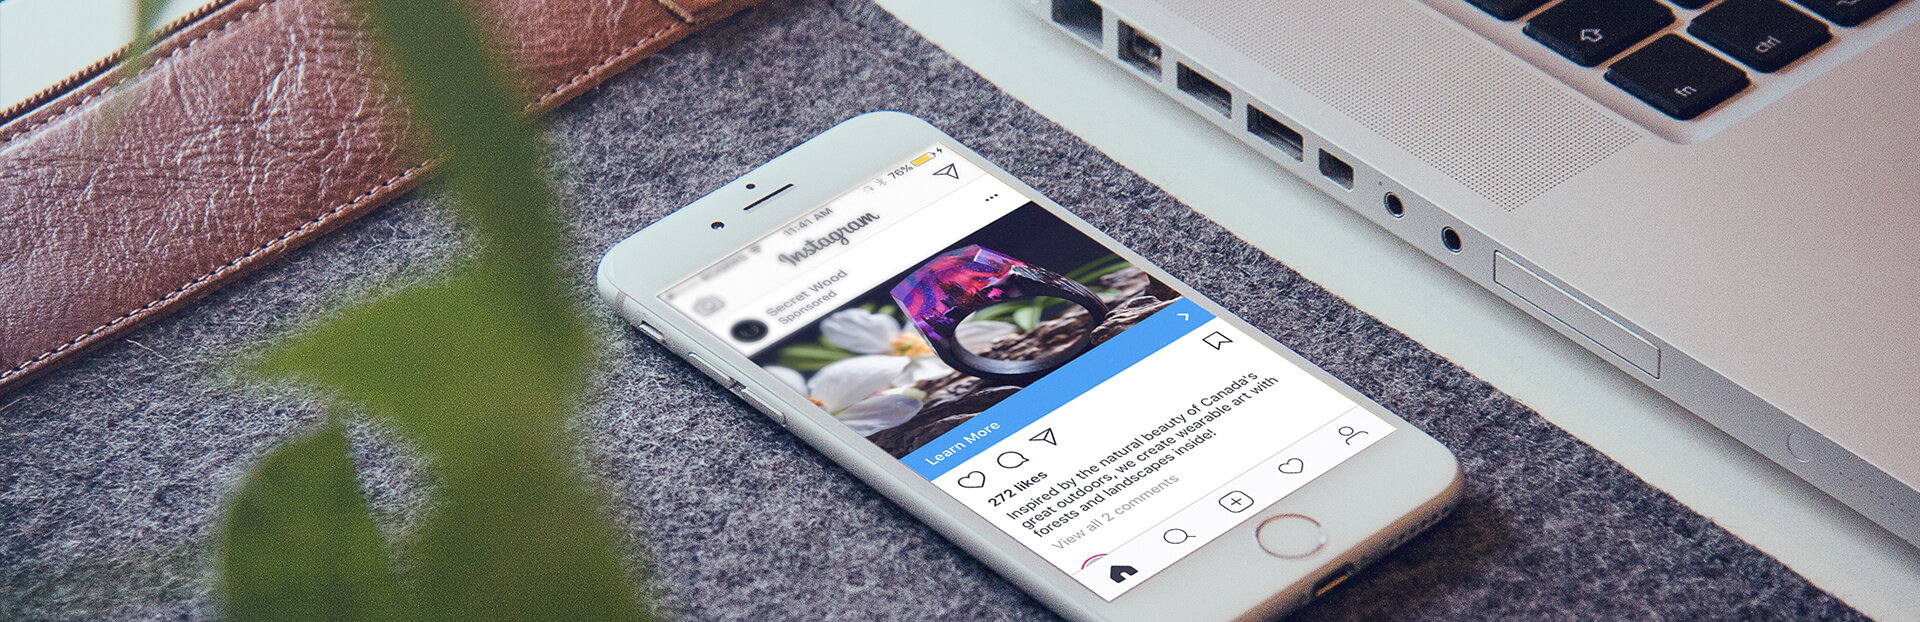 Instagram Reach Report open on a mobile device